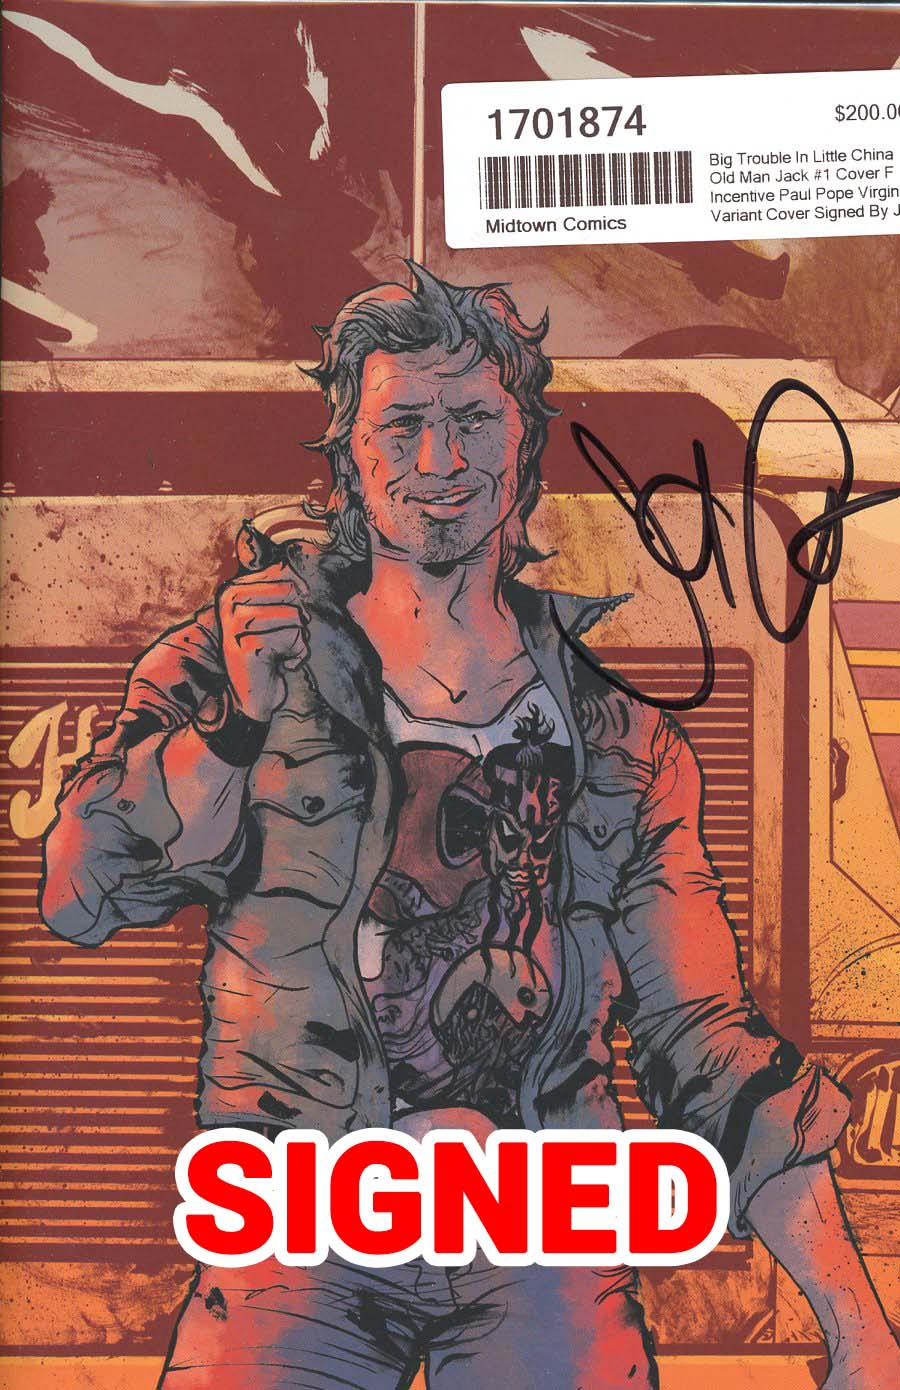 Big Trouble In Little China Old Man Jack #1 Cover F Incentive Paul Pope Virgin Variant Cover Signed By John Carpenter